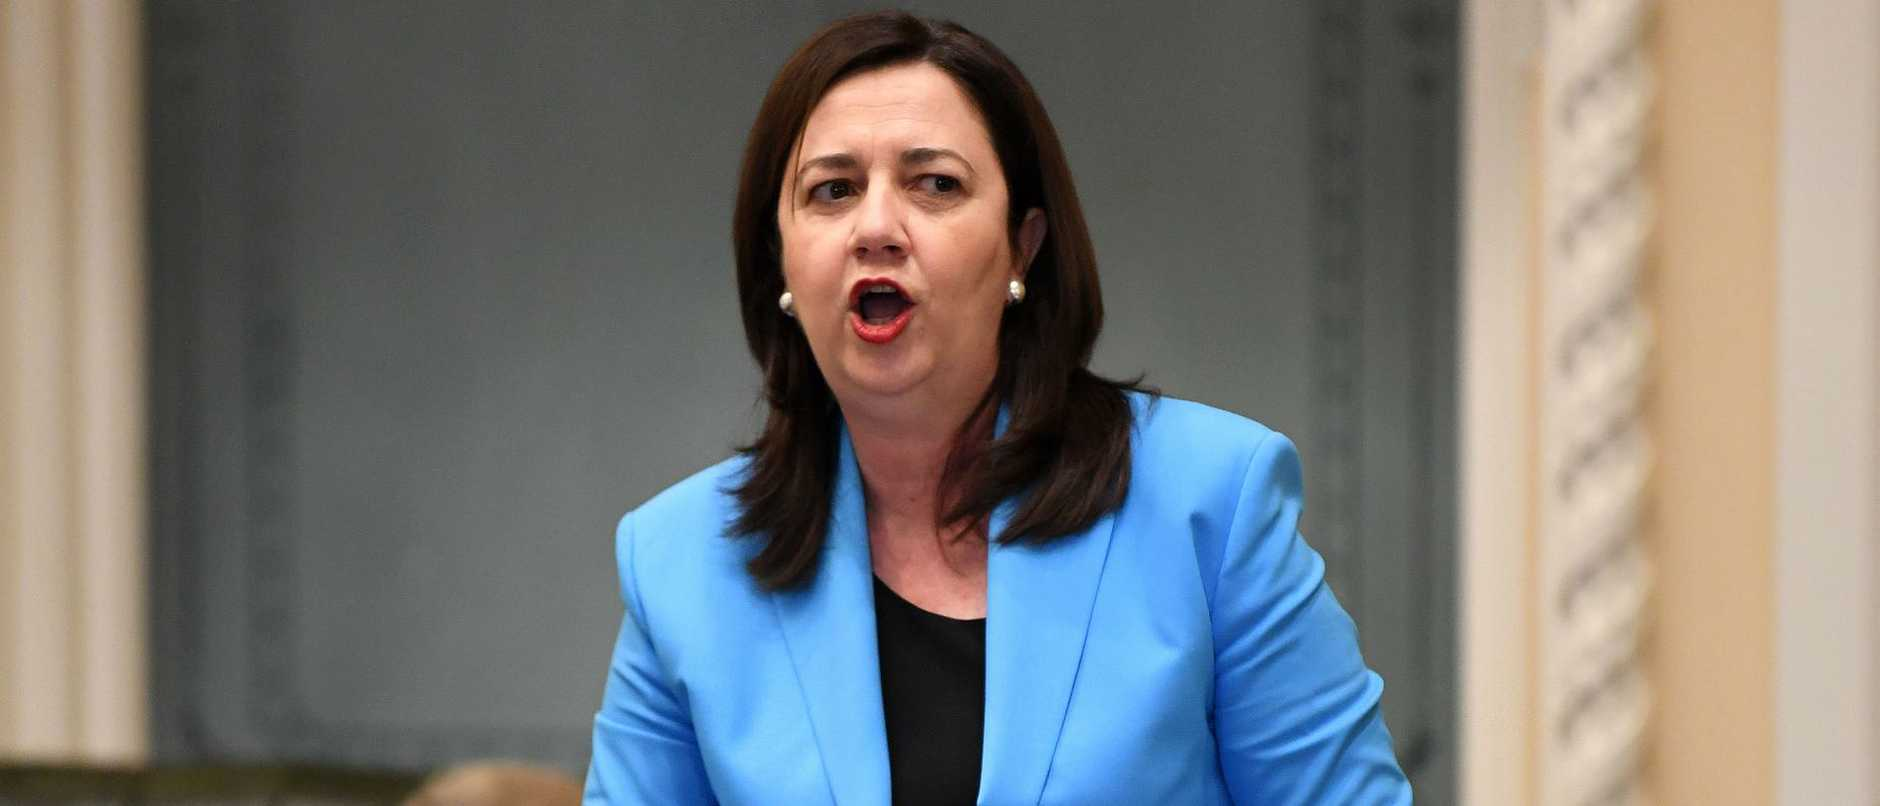 Palaszczuk Government must work to restore spirit of democracy, despite COVID pandemic